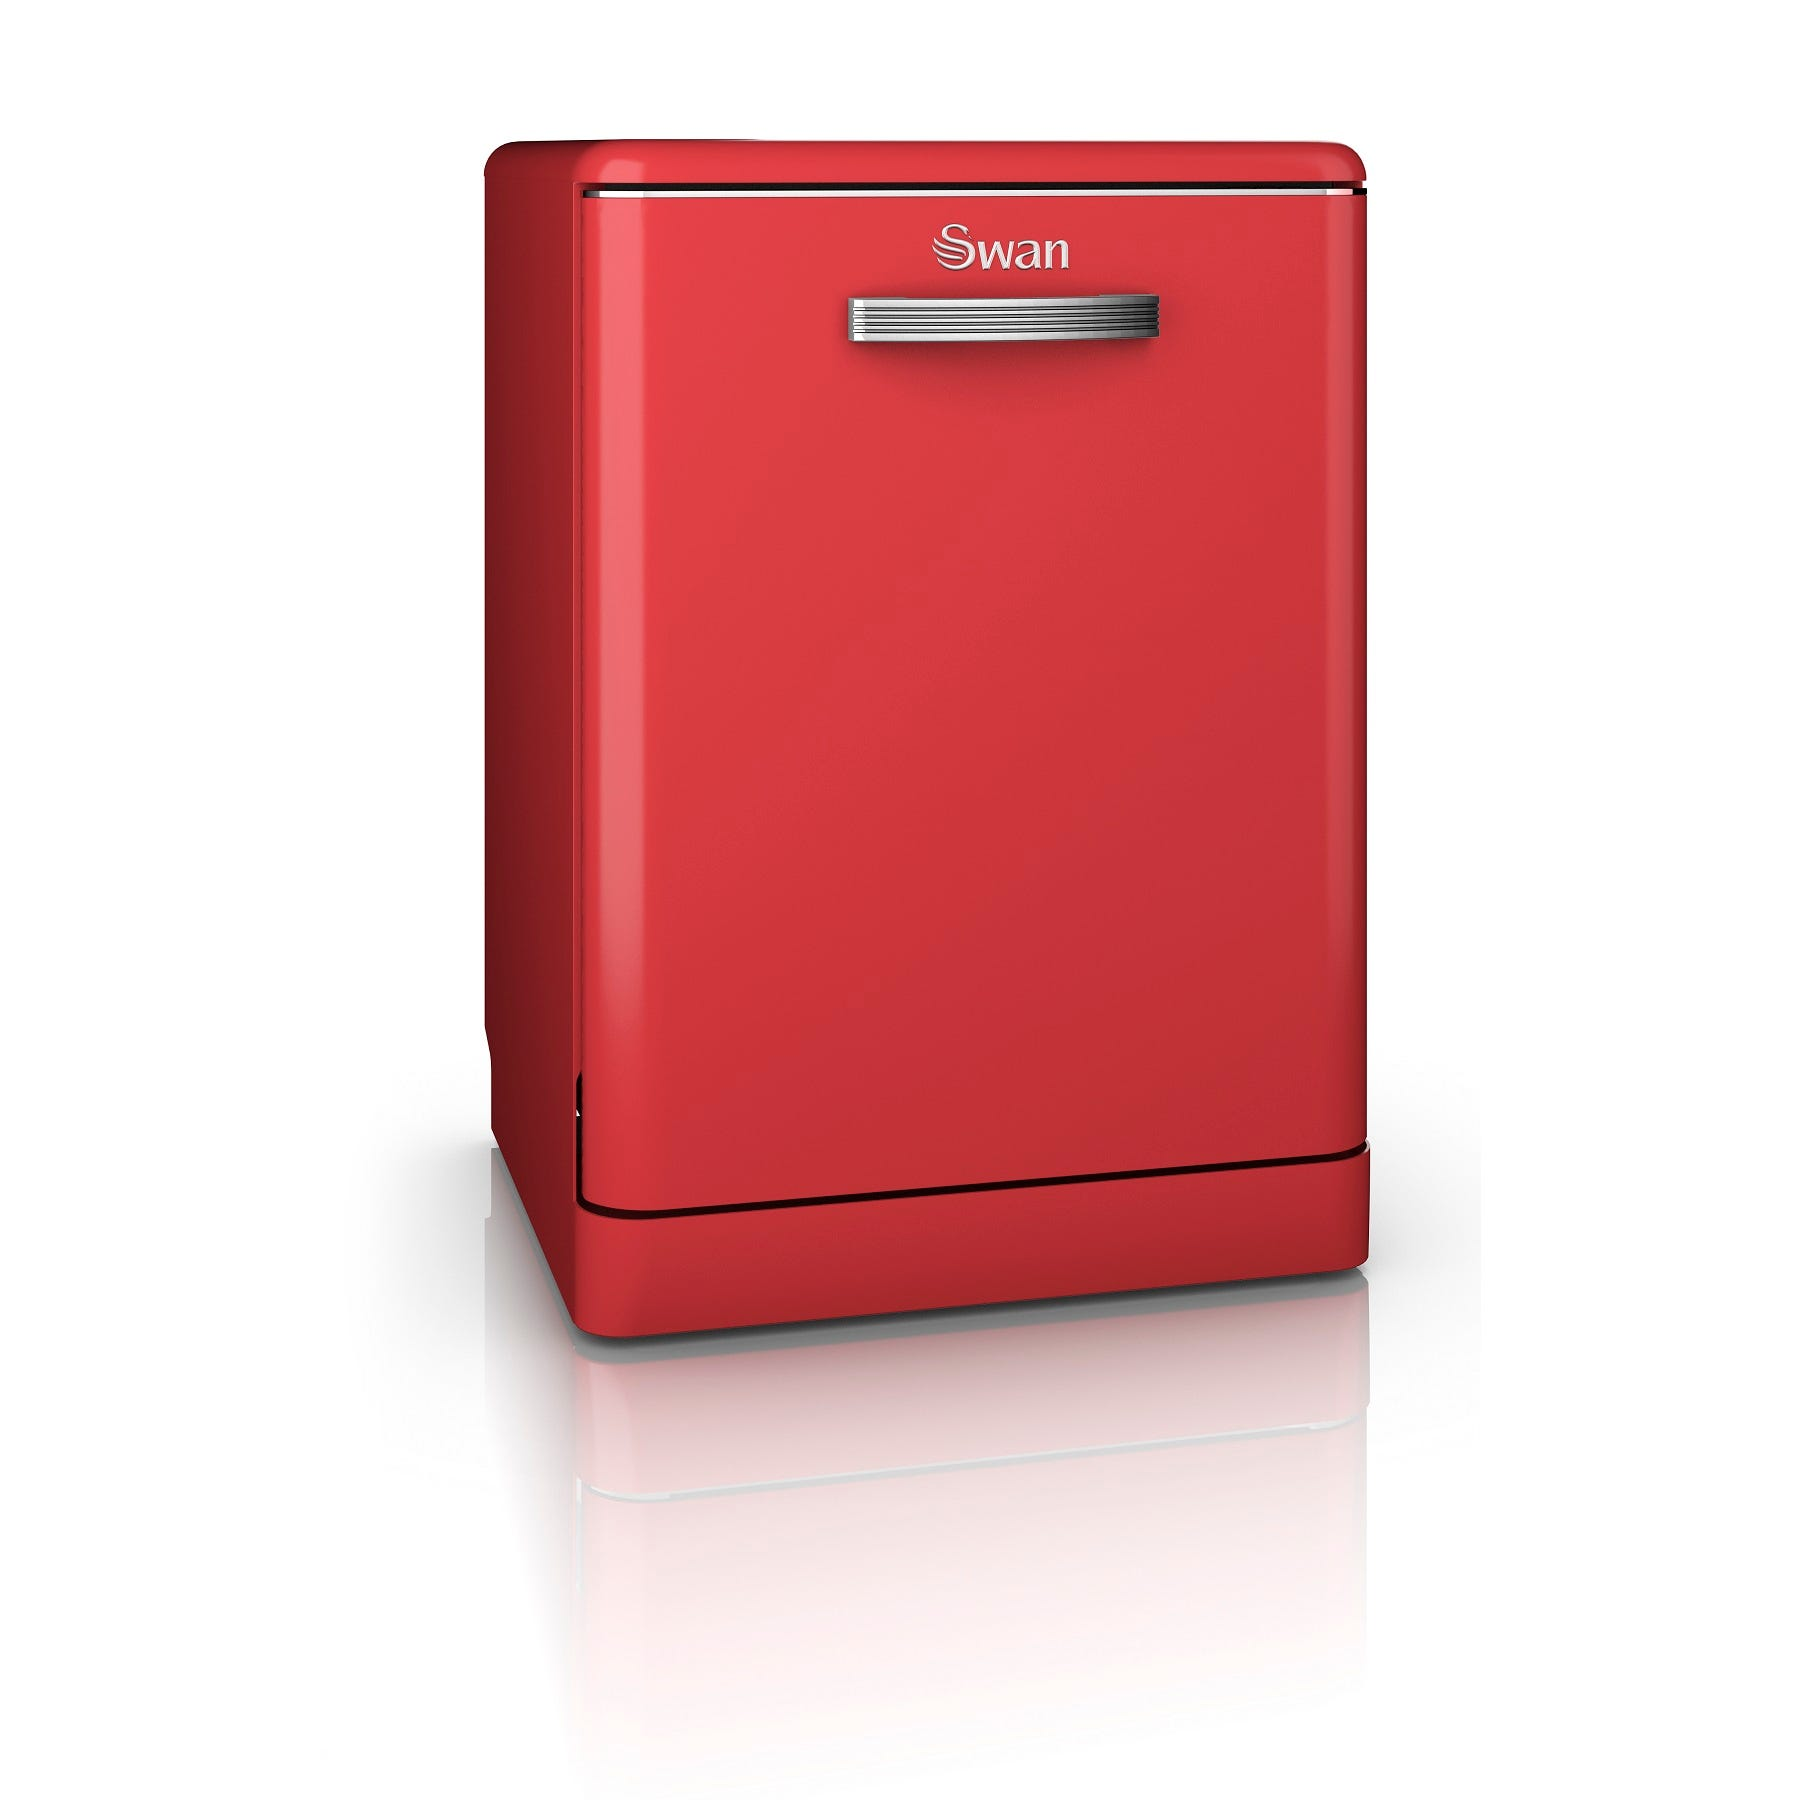 Swan SDW7040RN Retro Dishwasher - Red